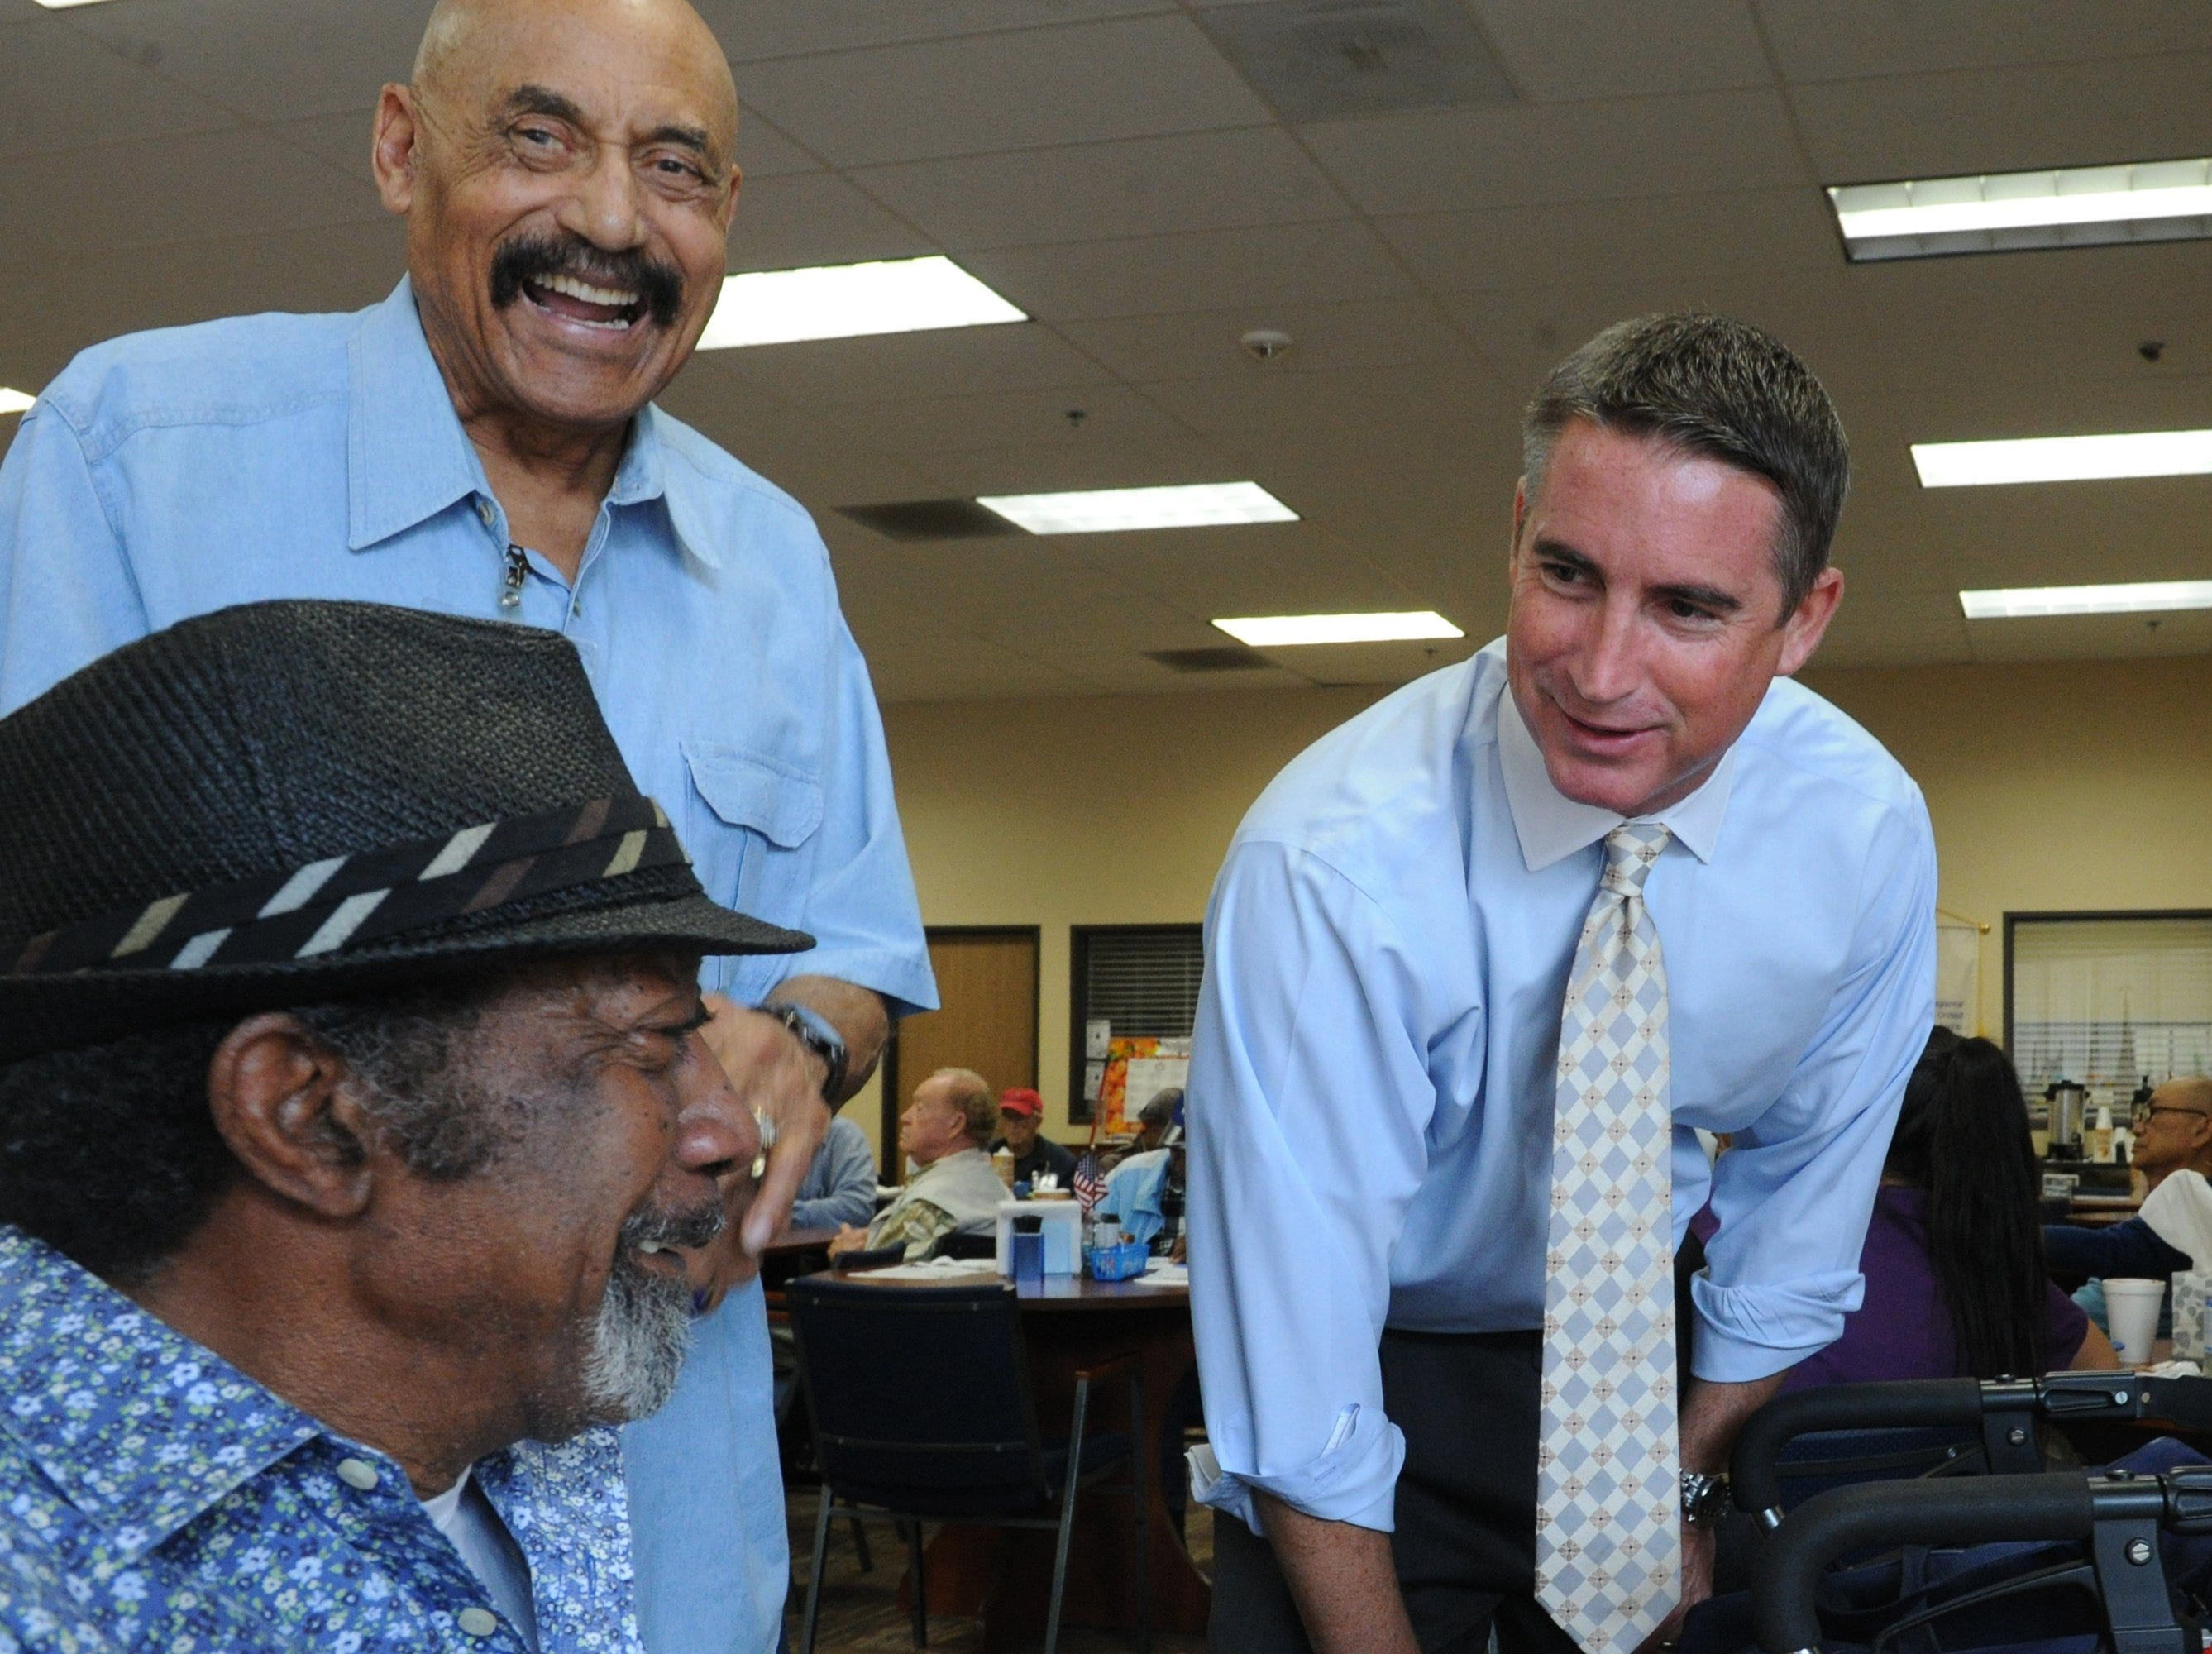 In 2014, former Assemblyman Jeff Gorell, right, was campaigning for Congress. Bedford Pinkard, standing left, is seen with Gorell greeting a veteran at the Adult Day Health Care Center in Oxnard.